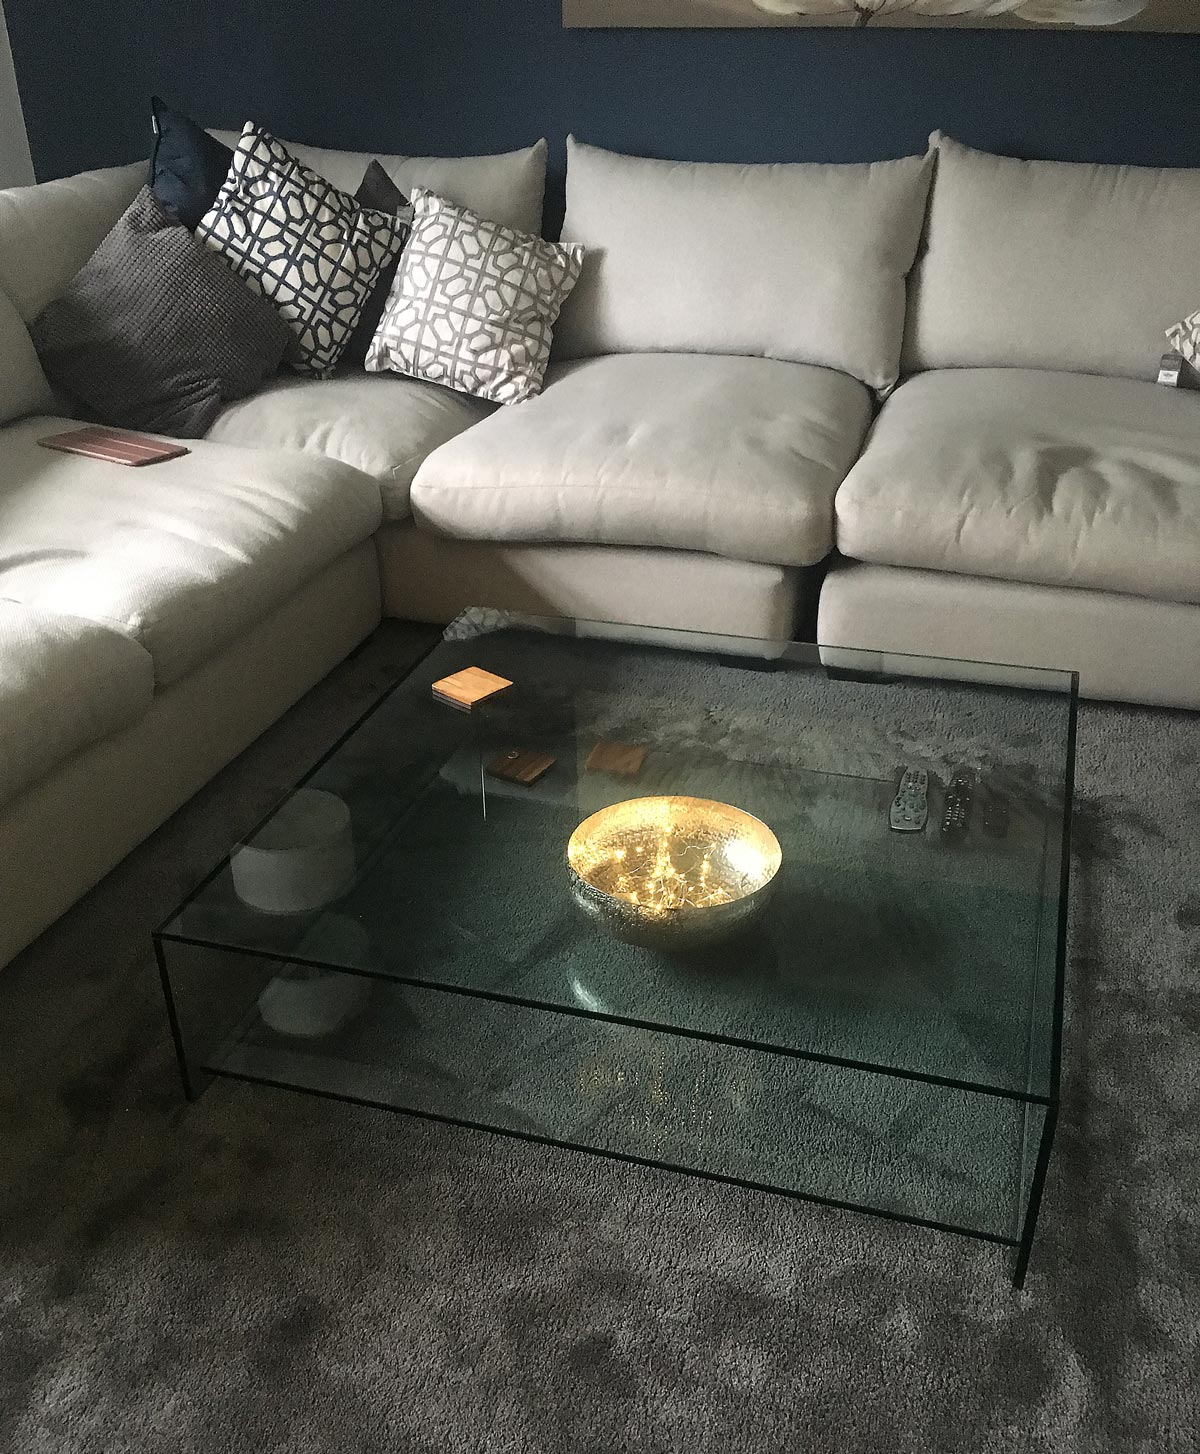 judd large square glass coffee table